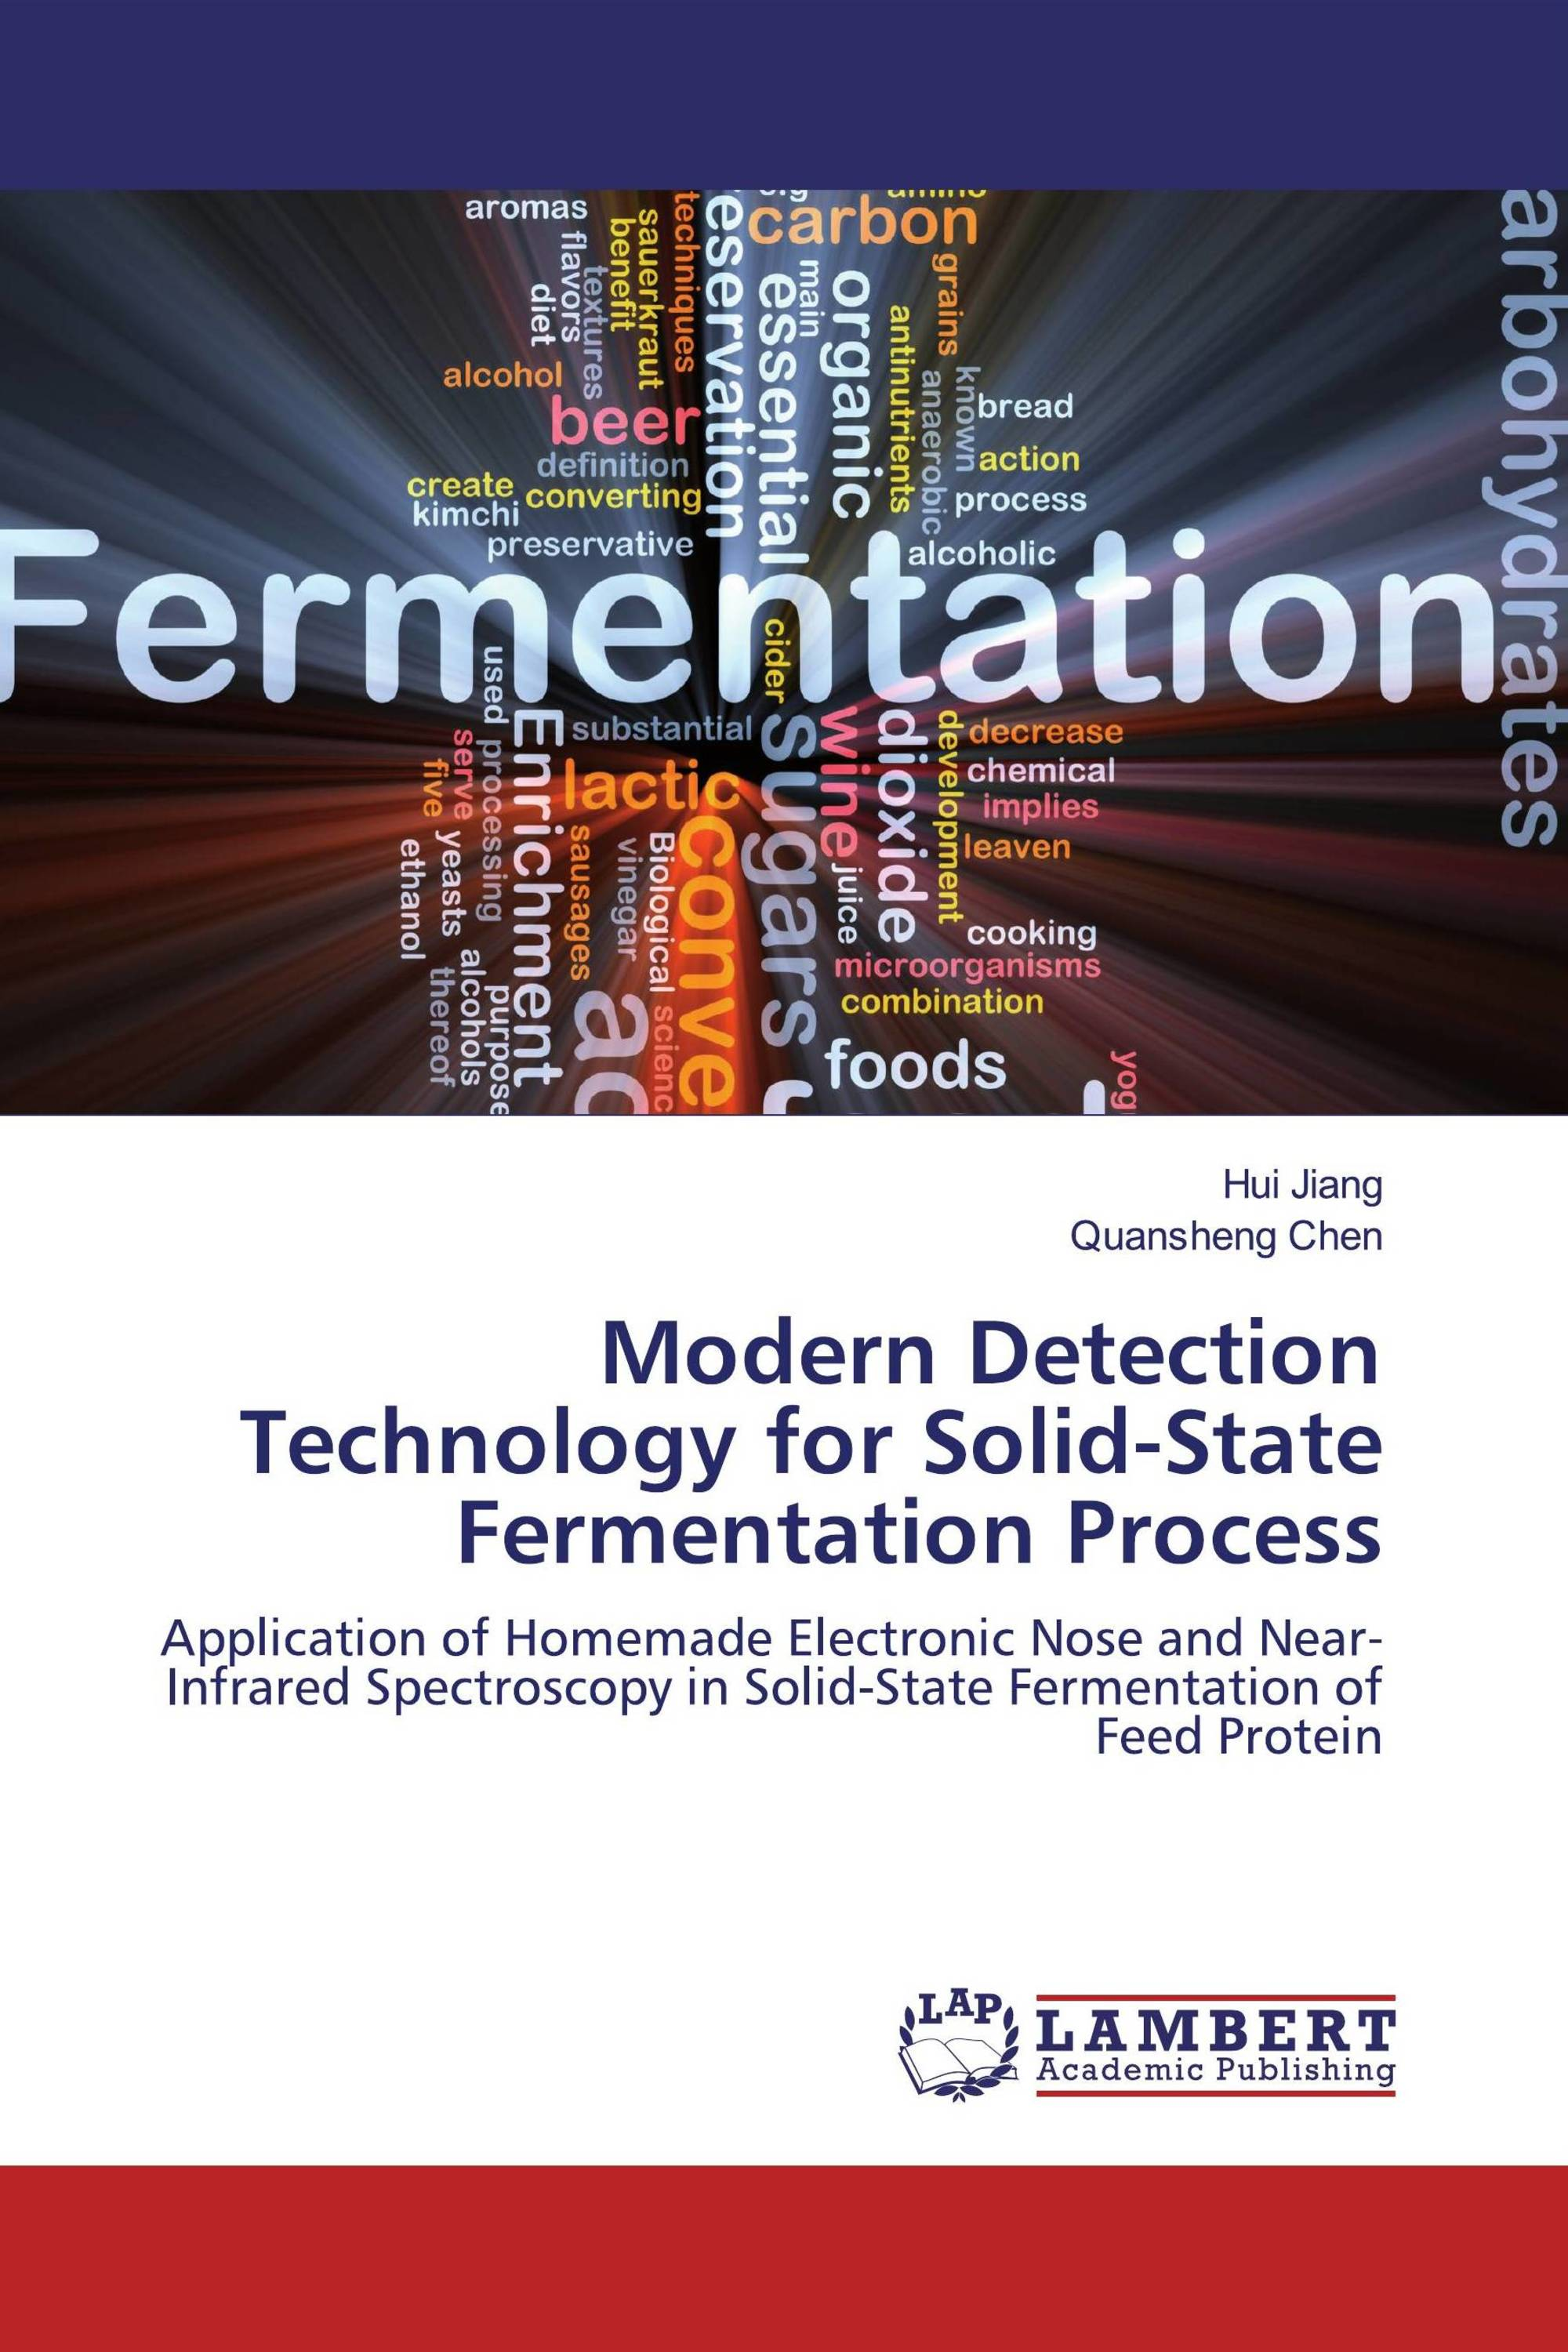 Modern Detection Technology for Solid-State Fermentation Process